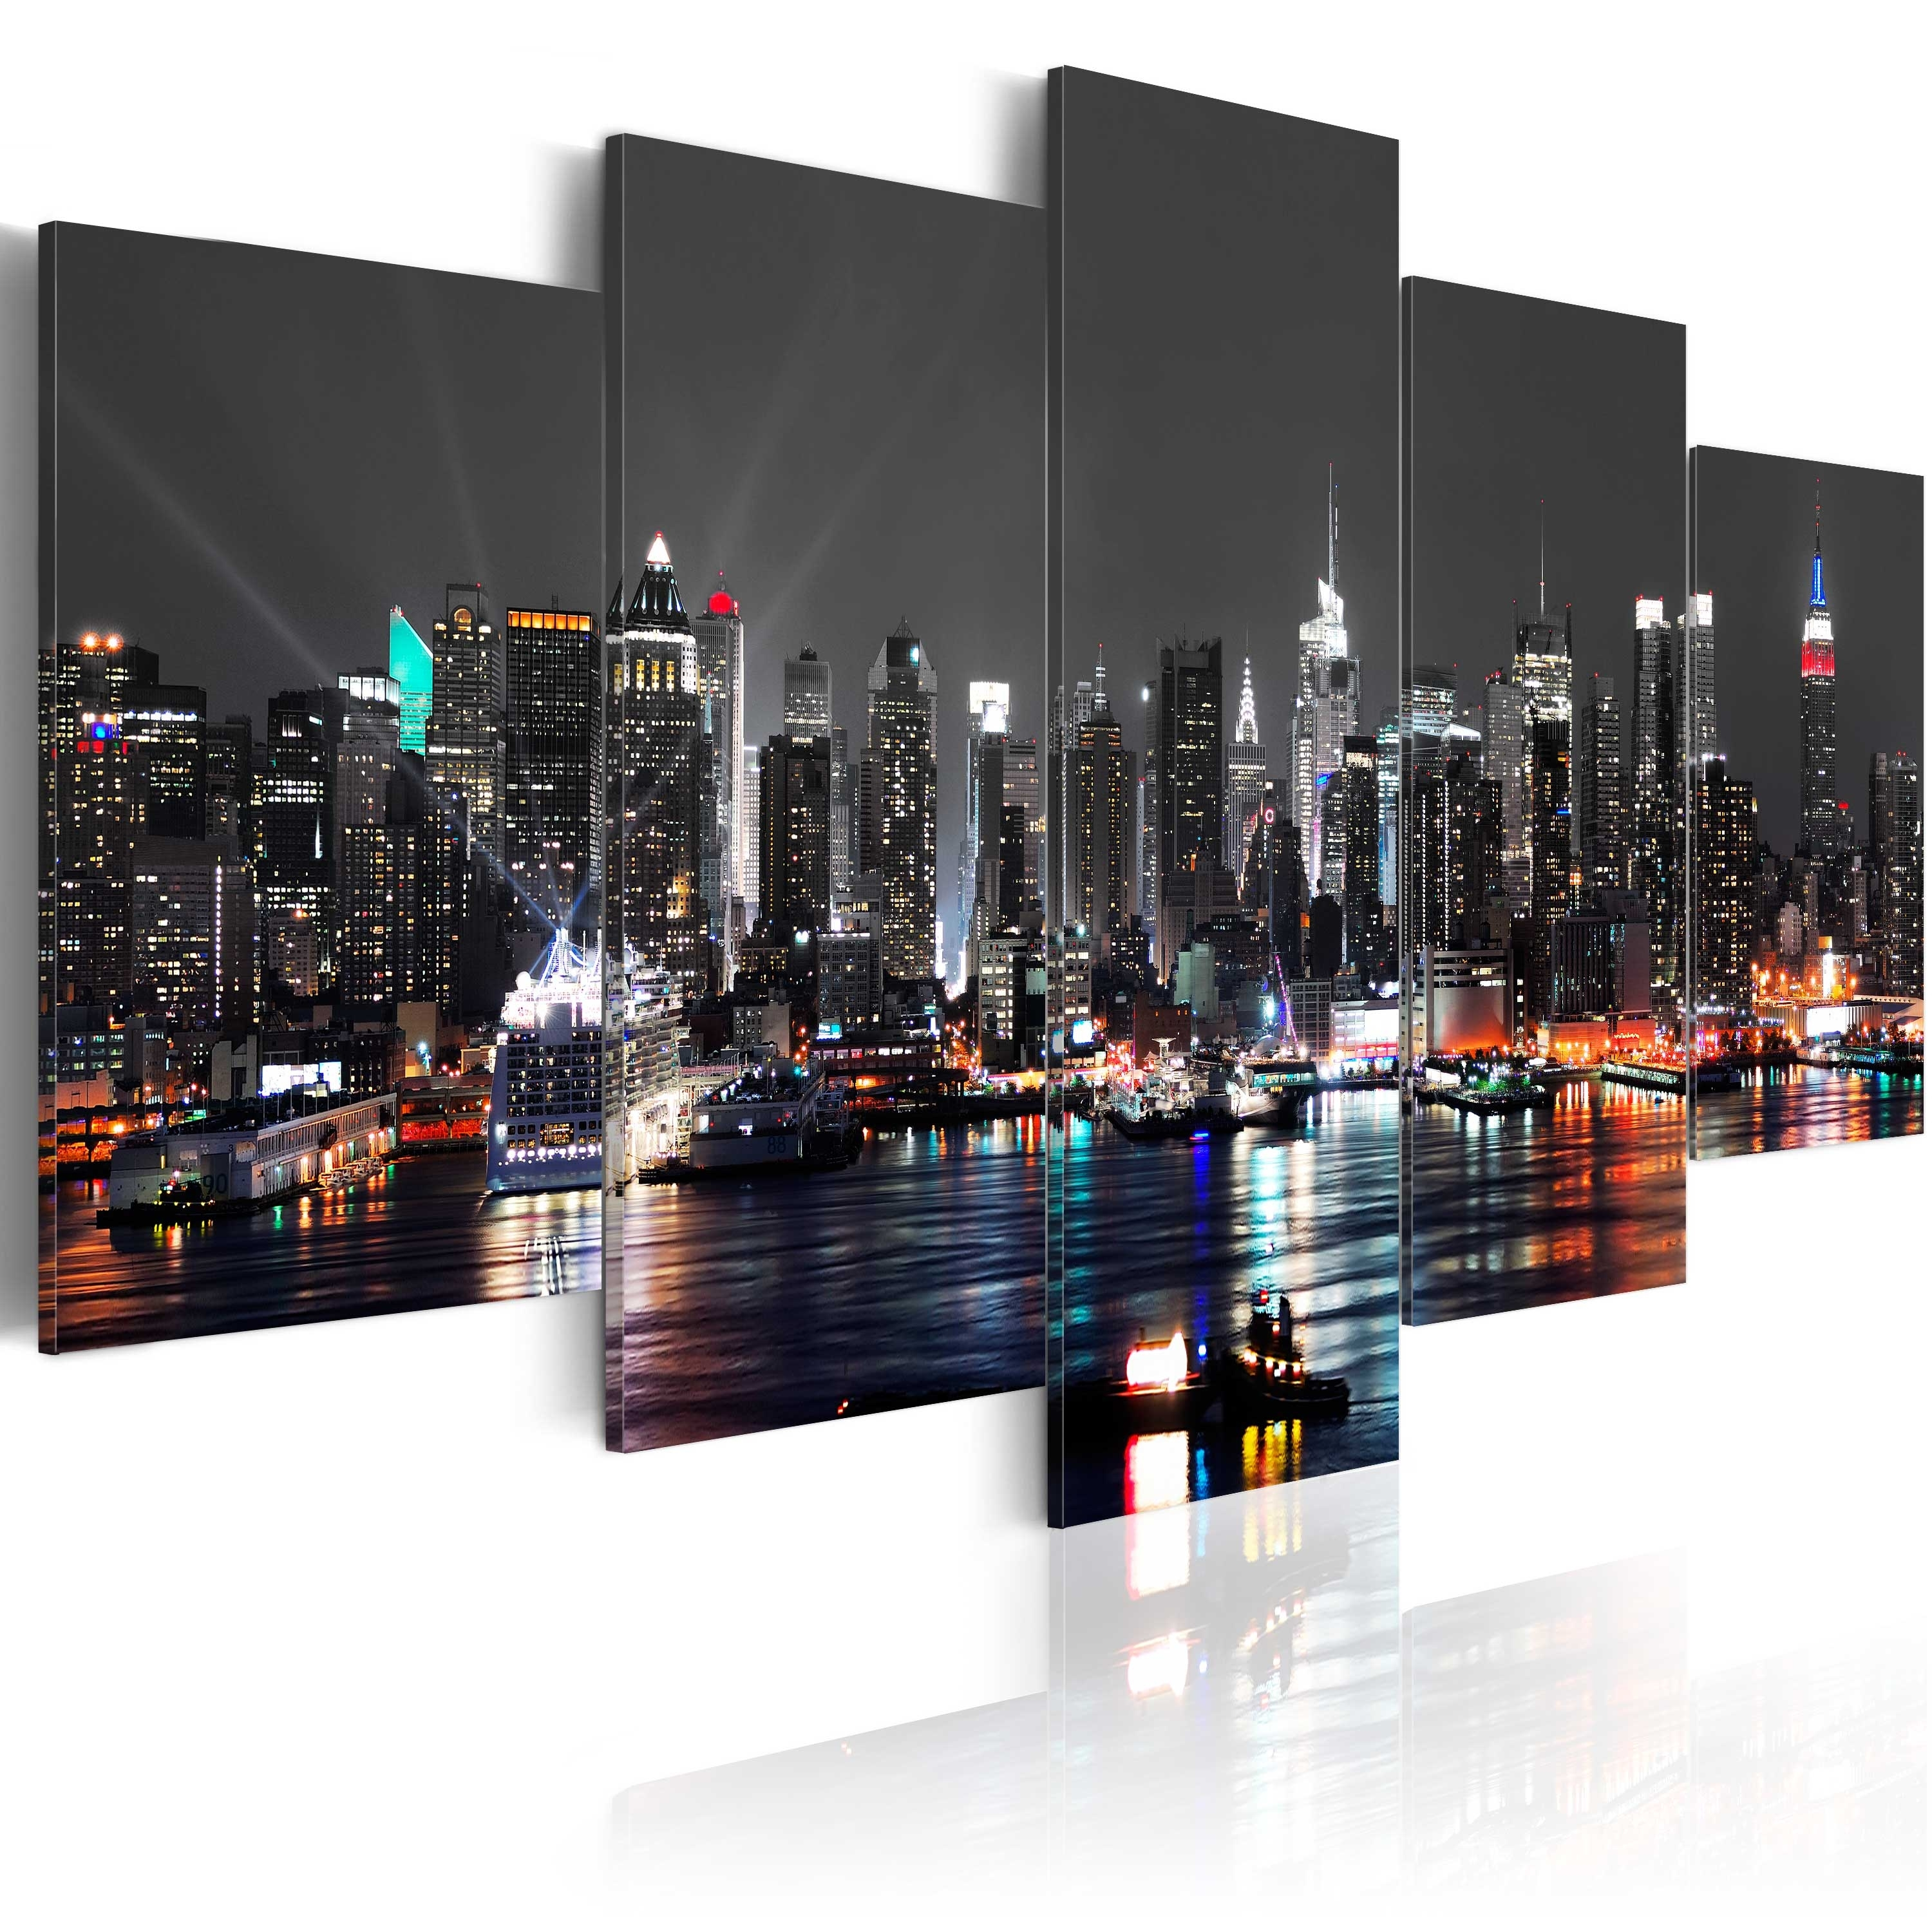 Canvas Wall Art Print Image Picture Photo New York D A 0022 B N | Ebay Throughout Current New York Wall Art (View 5 of 20)